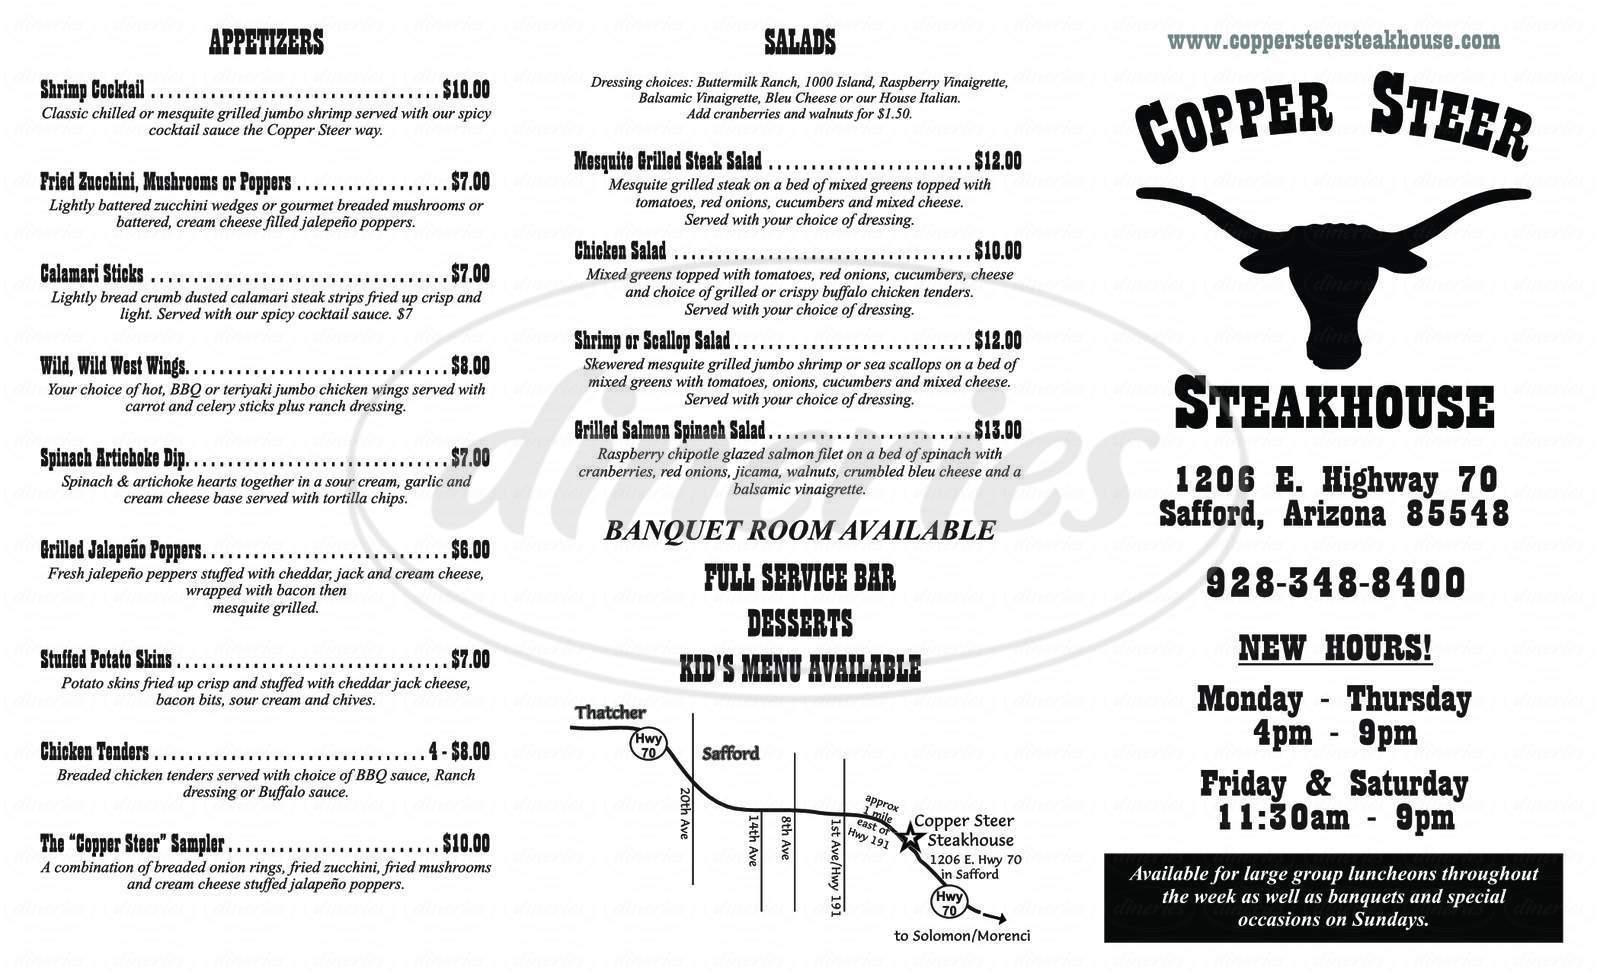 menu for Copper Steer Steakhouse